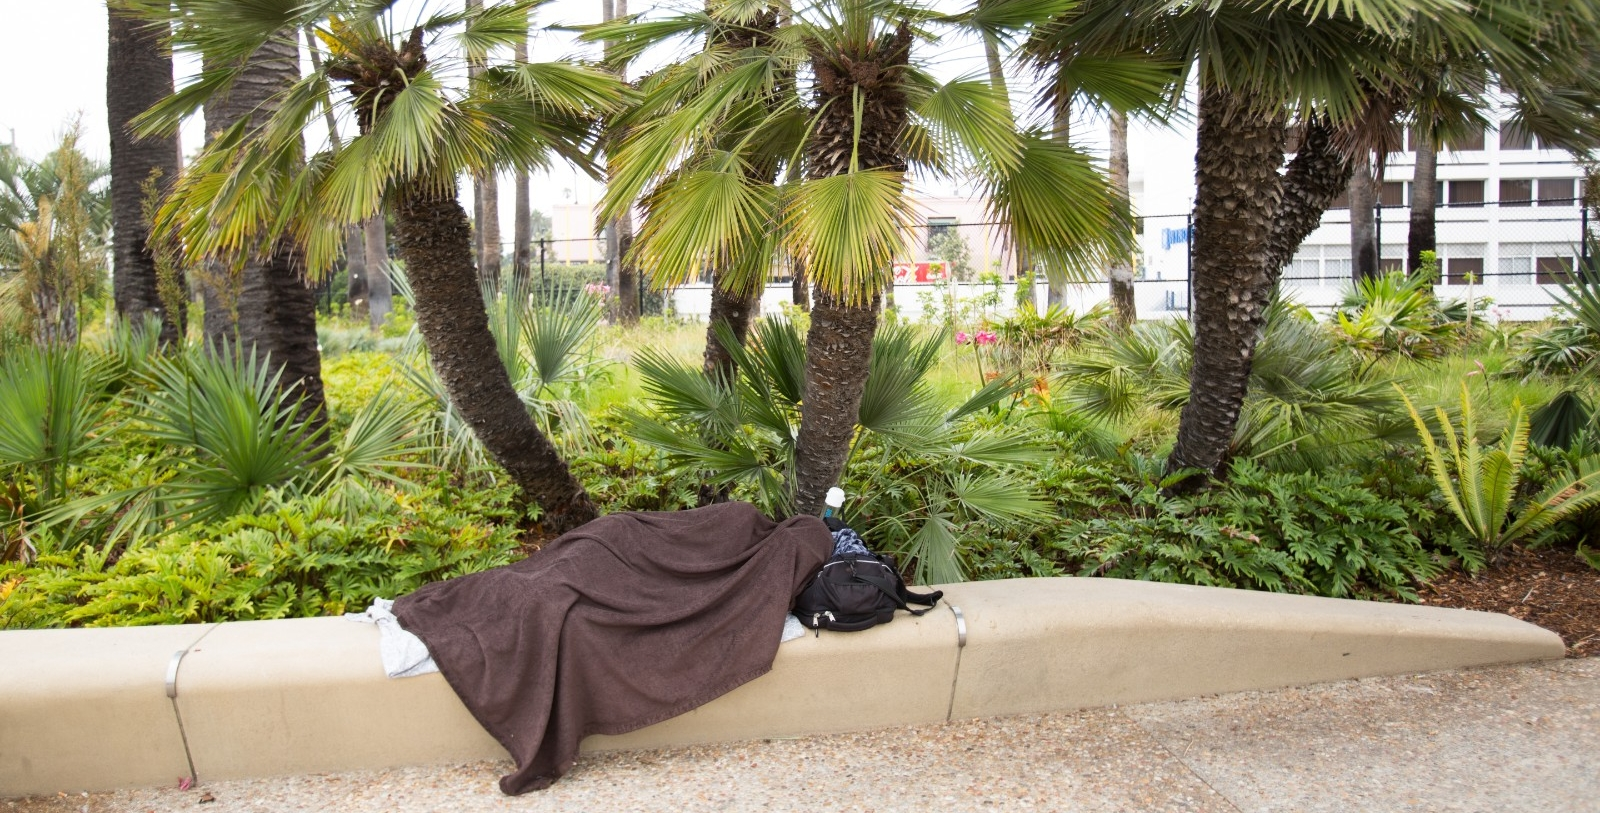 Homeless individual in California